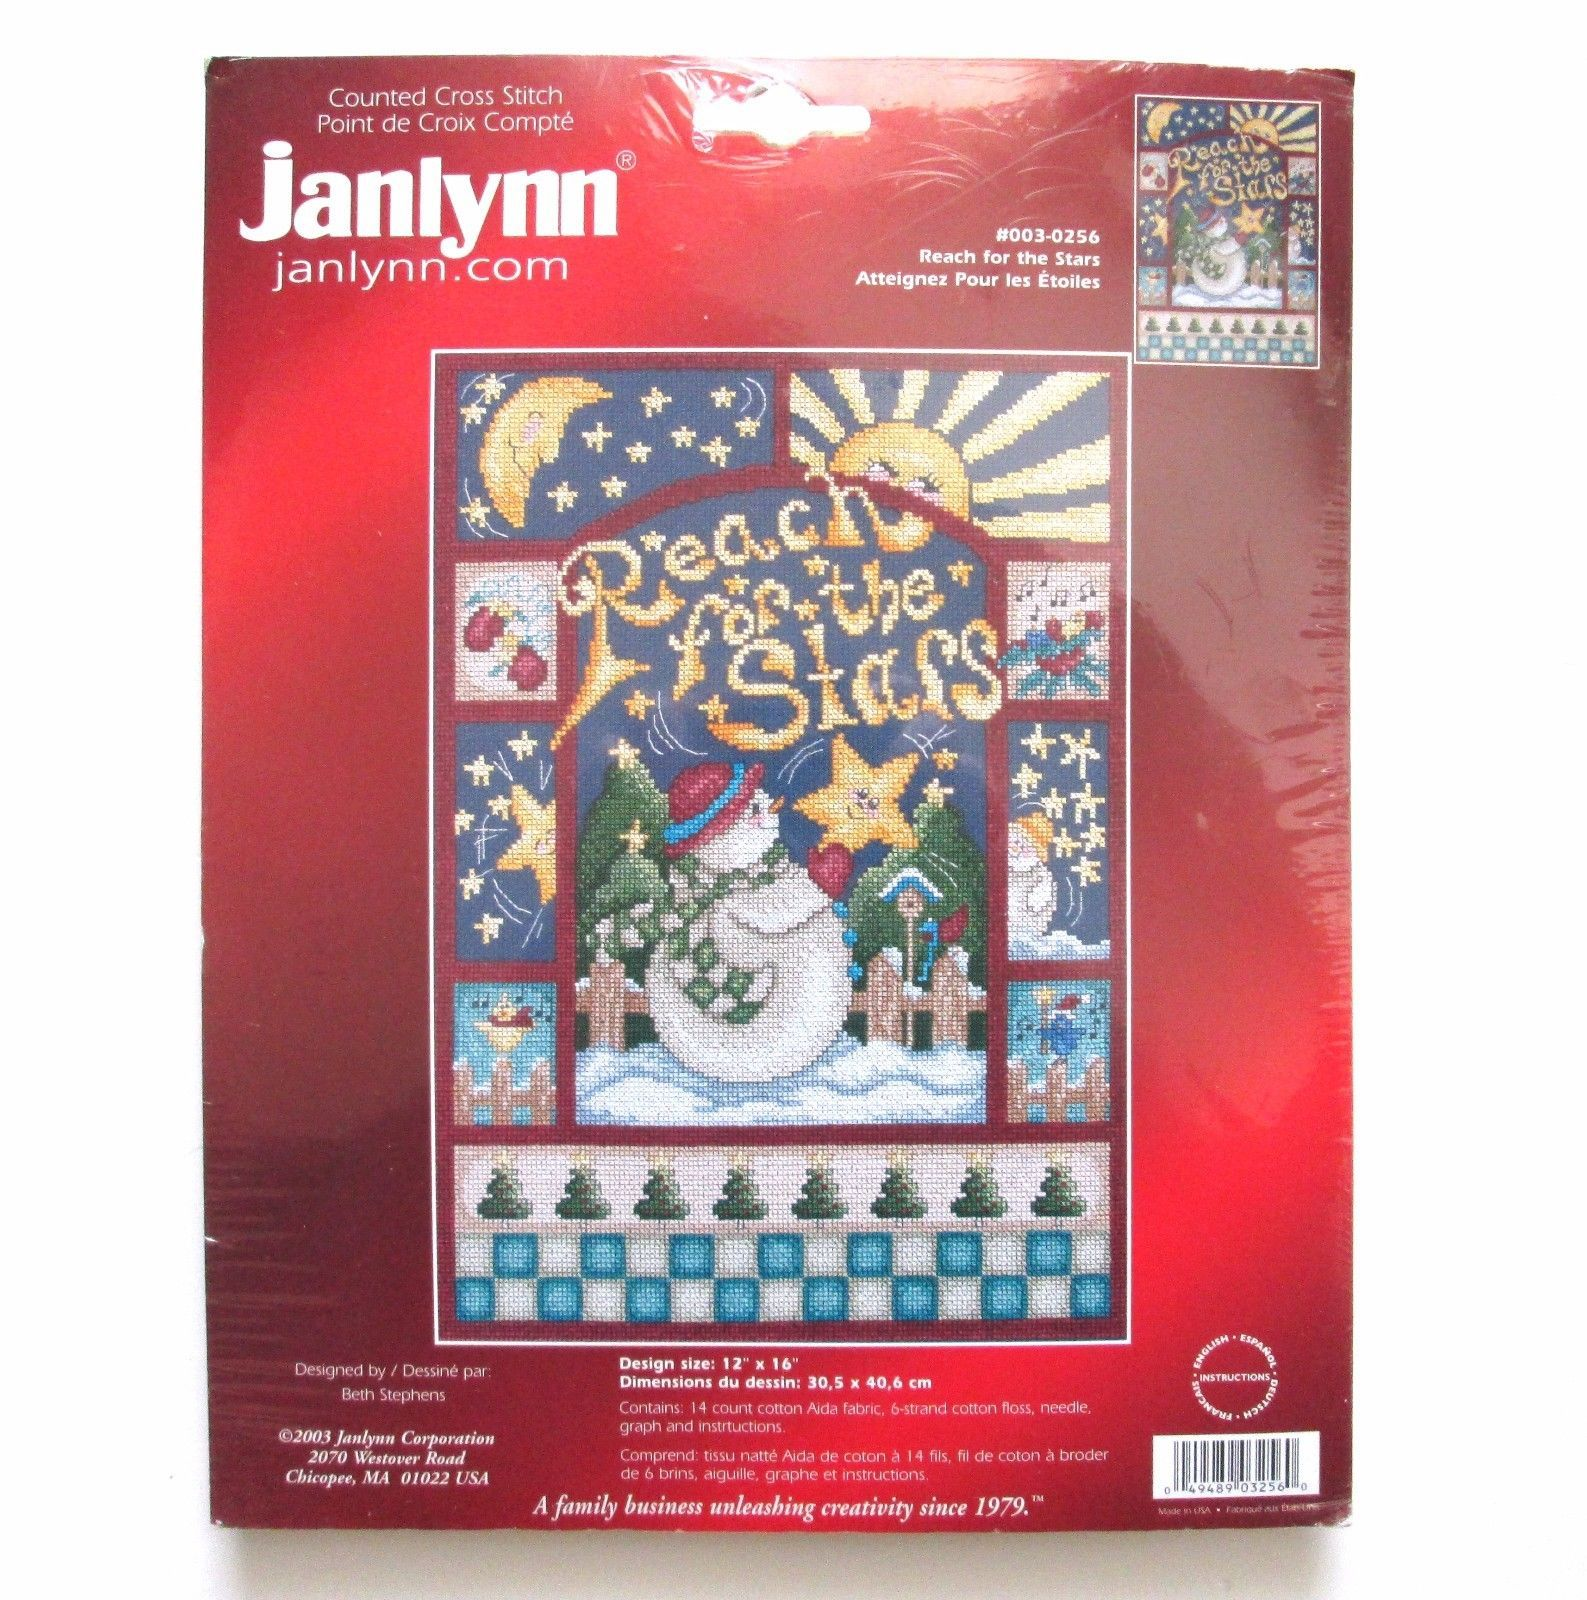 Janlynn Reach for the Stars Snowman Christmas Counted Cross Stitch Kit #003-0256